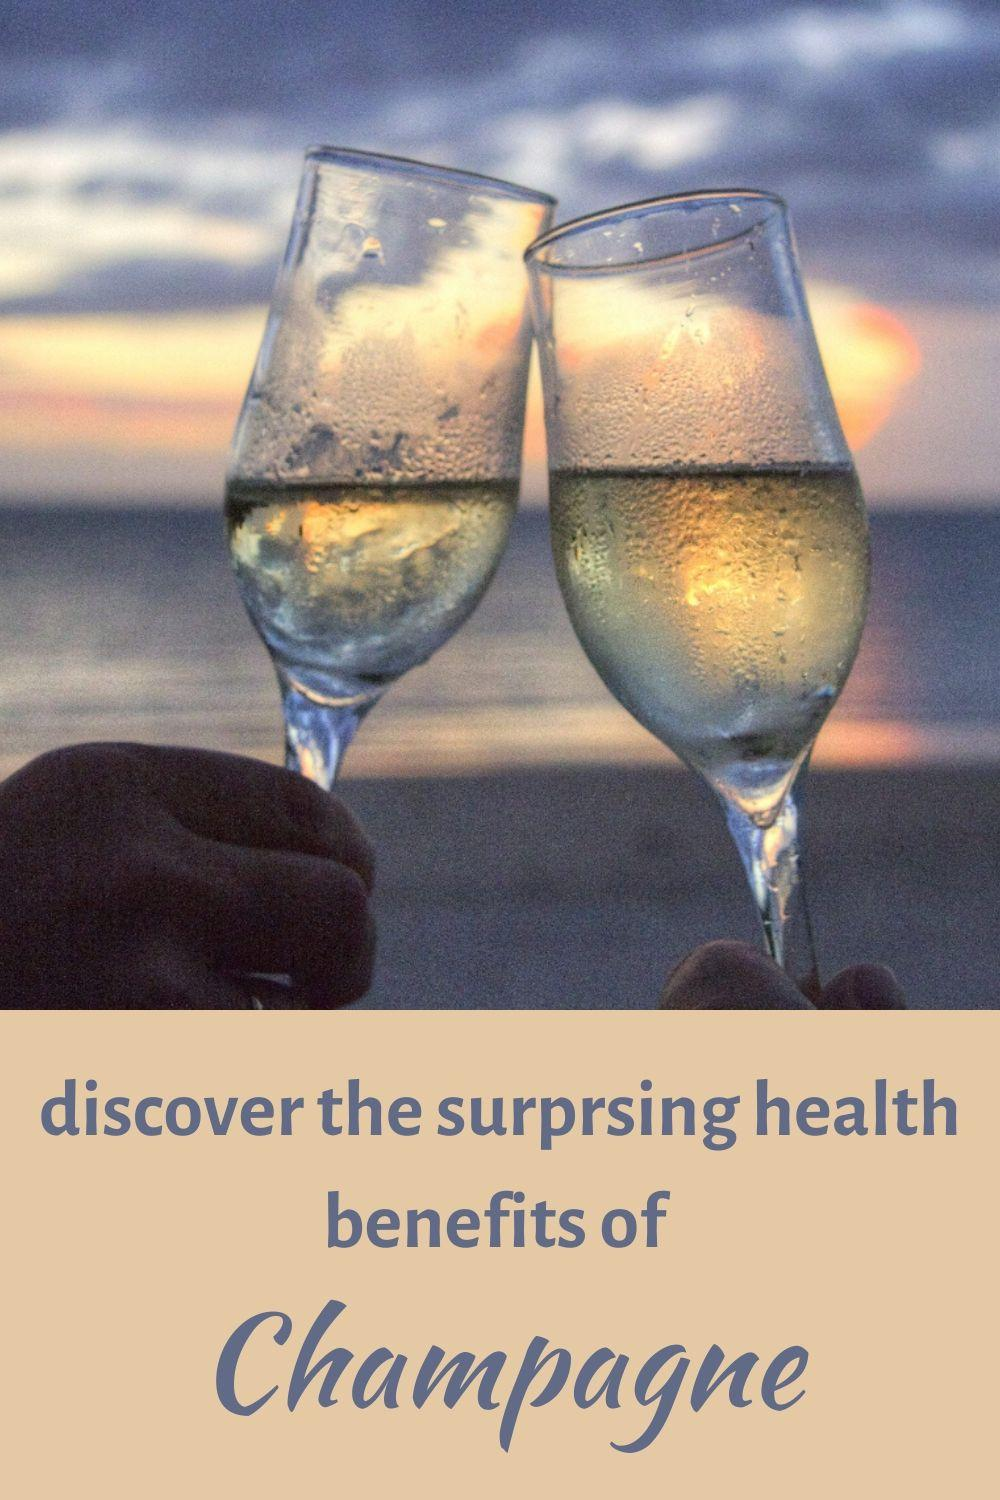 Discover the benefits of Champagne